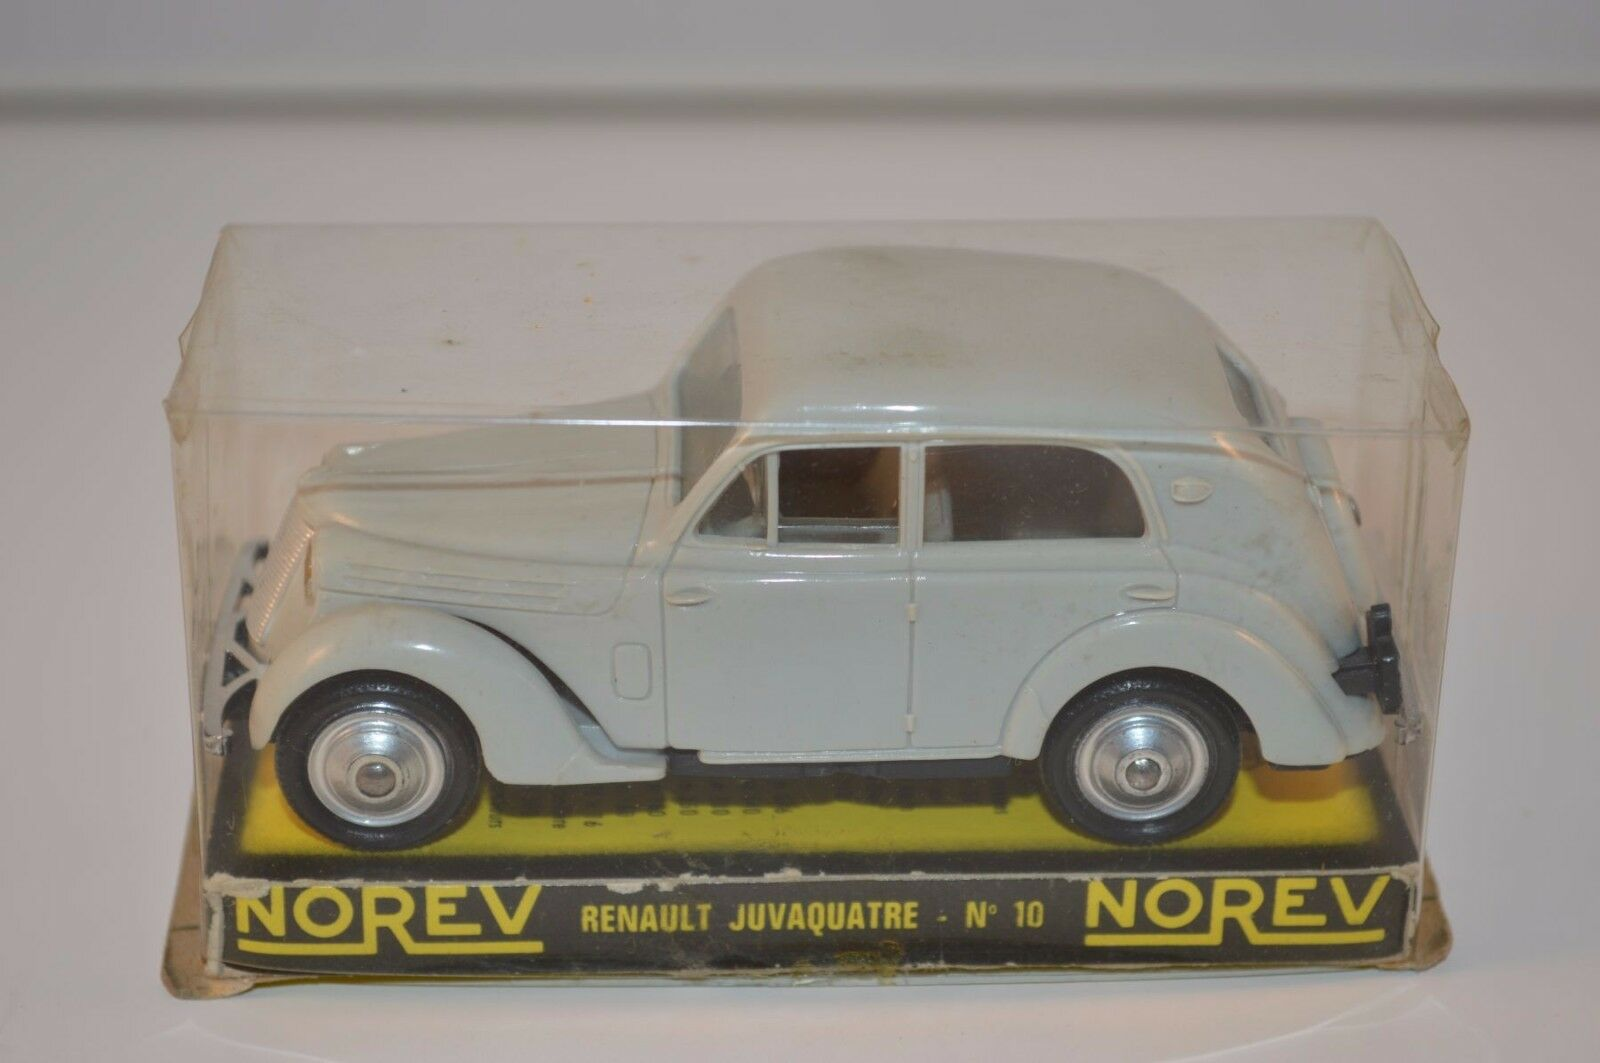 Norev 10 Renault Juvaquatre grigio plastique perfect mint in box superb